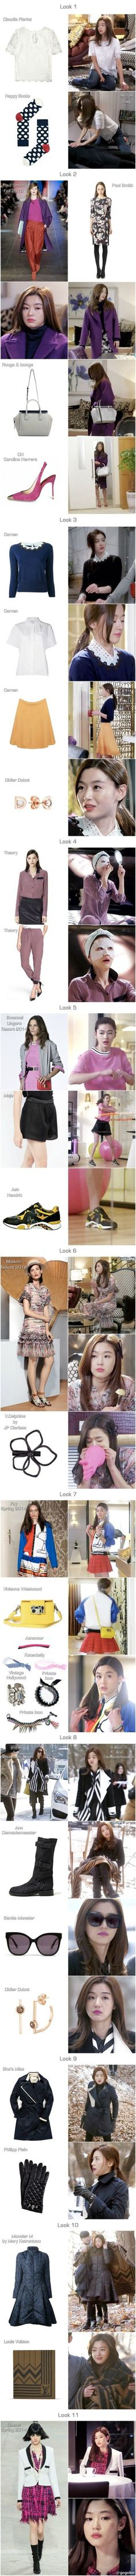 """Amazing Look from Asian Drama """"My Love from Another Star"""" - Page 2 - PurseForum"""